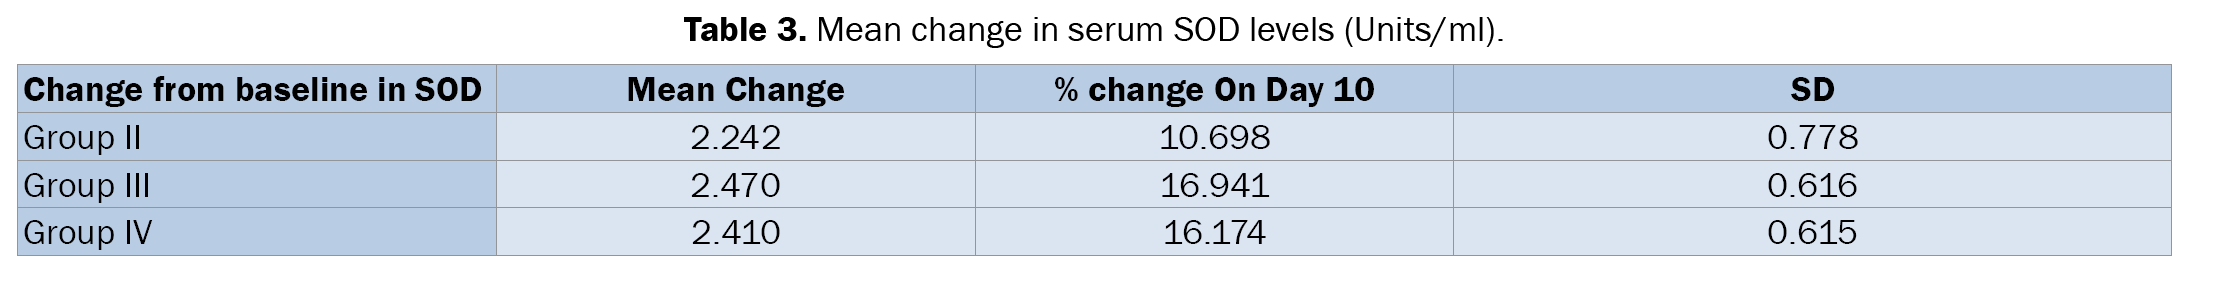 Dental-Sciences-Mean-change-serum-SOD-levels